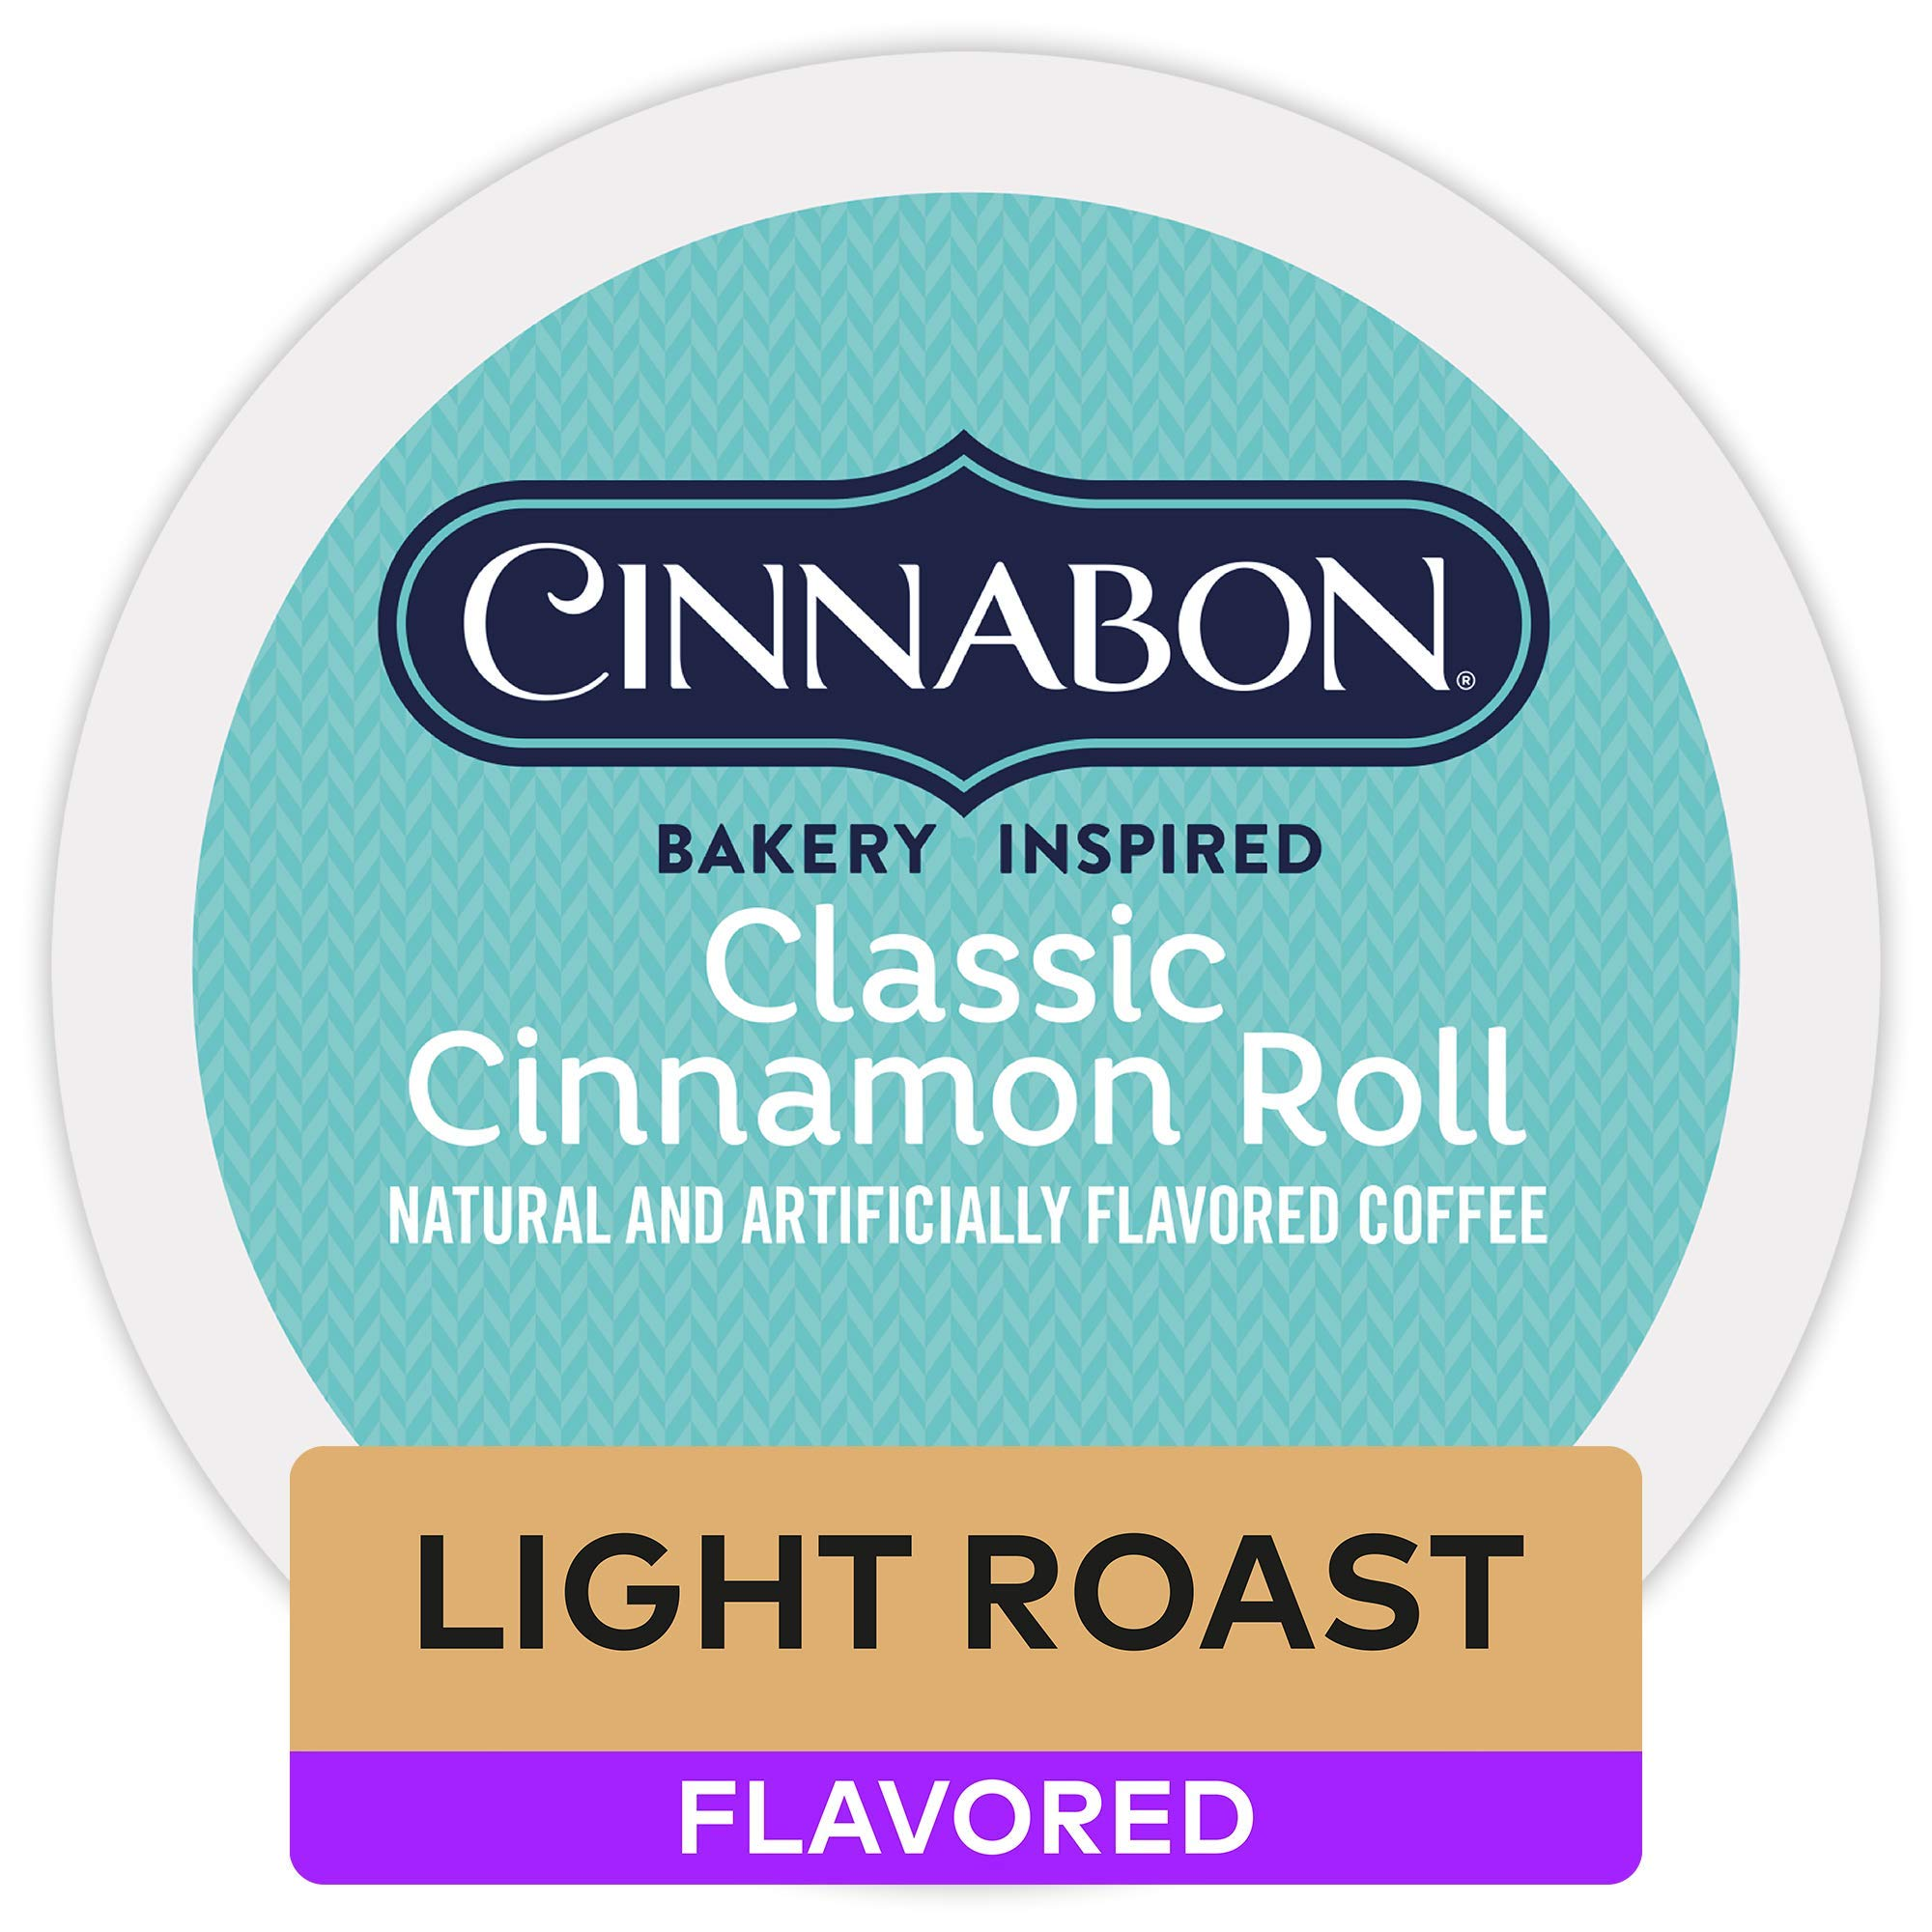 UNK Premium 2-Pack Classic Cinnamon Roll, Single Serve Coffee K-Cup Pod, Flavored Coffee, 12 Count, Pack of 6 by CINNABON